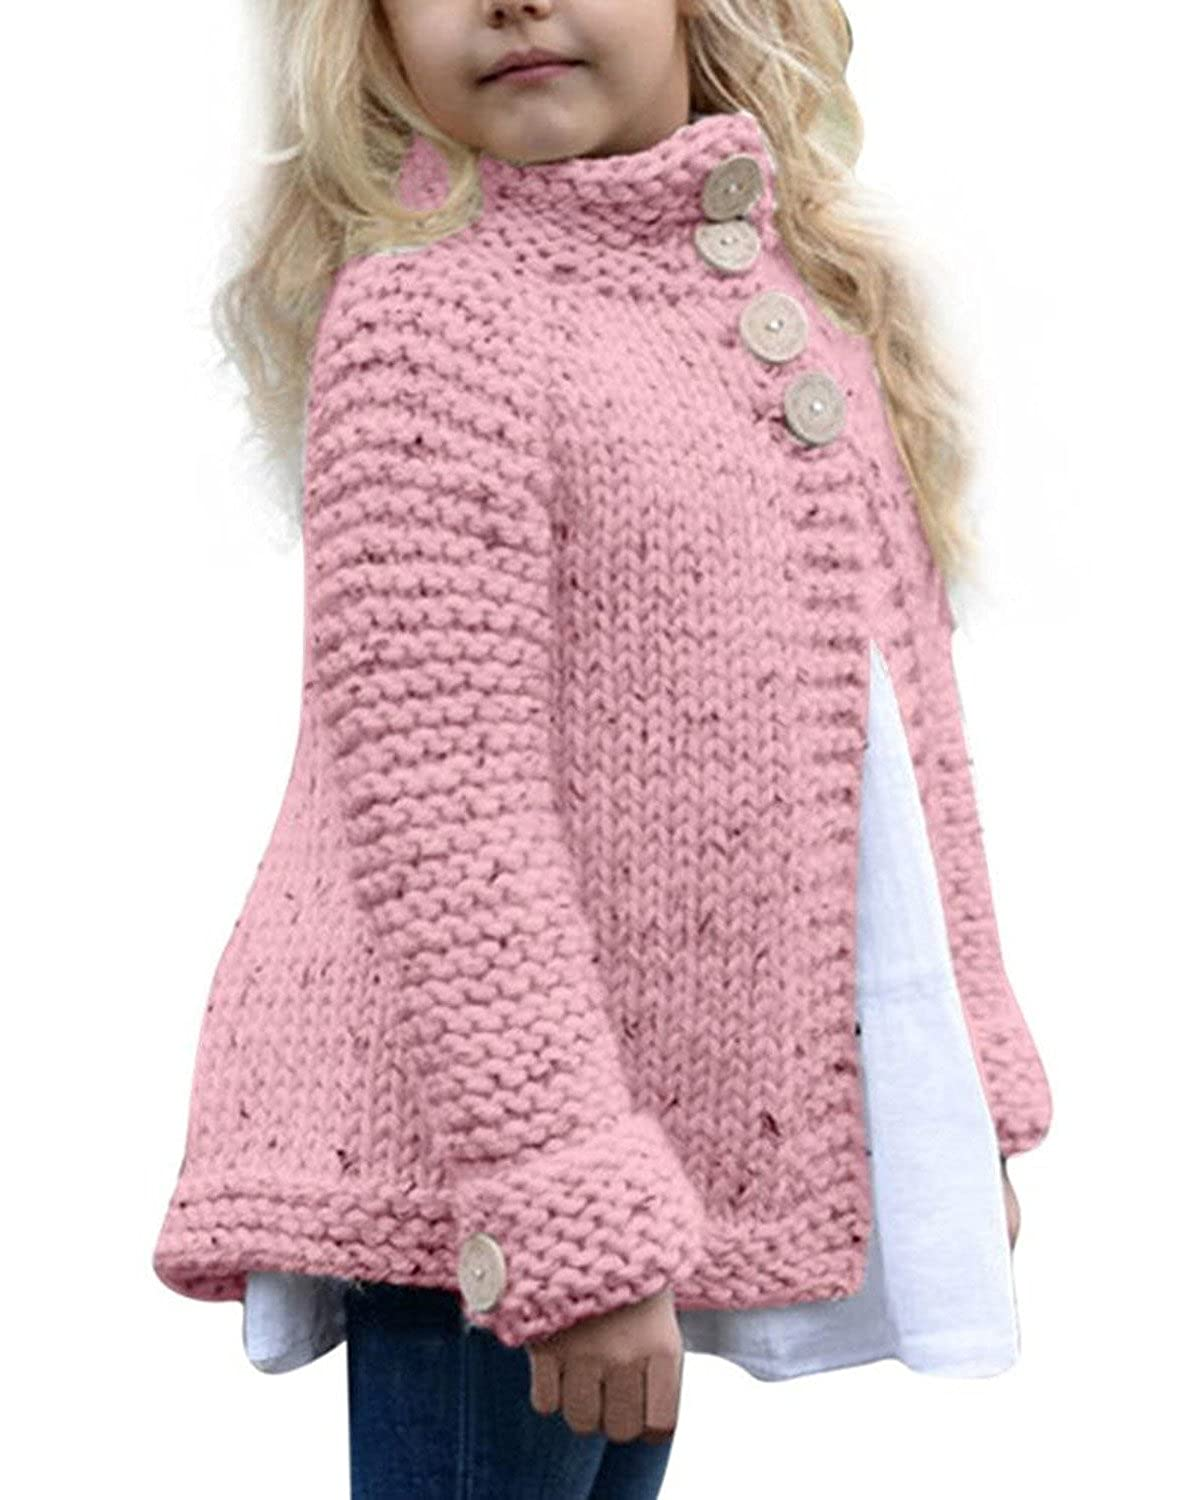 gllive Toddler Baby Girls Autumn Winter Clothes Button Knitted Sweater Cardigan Cloak Warm Thick Coat